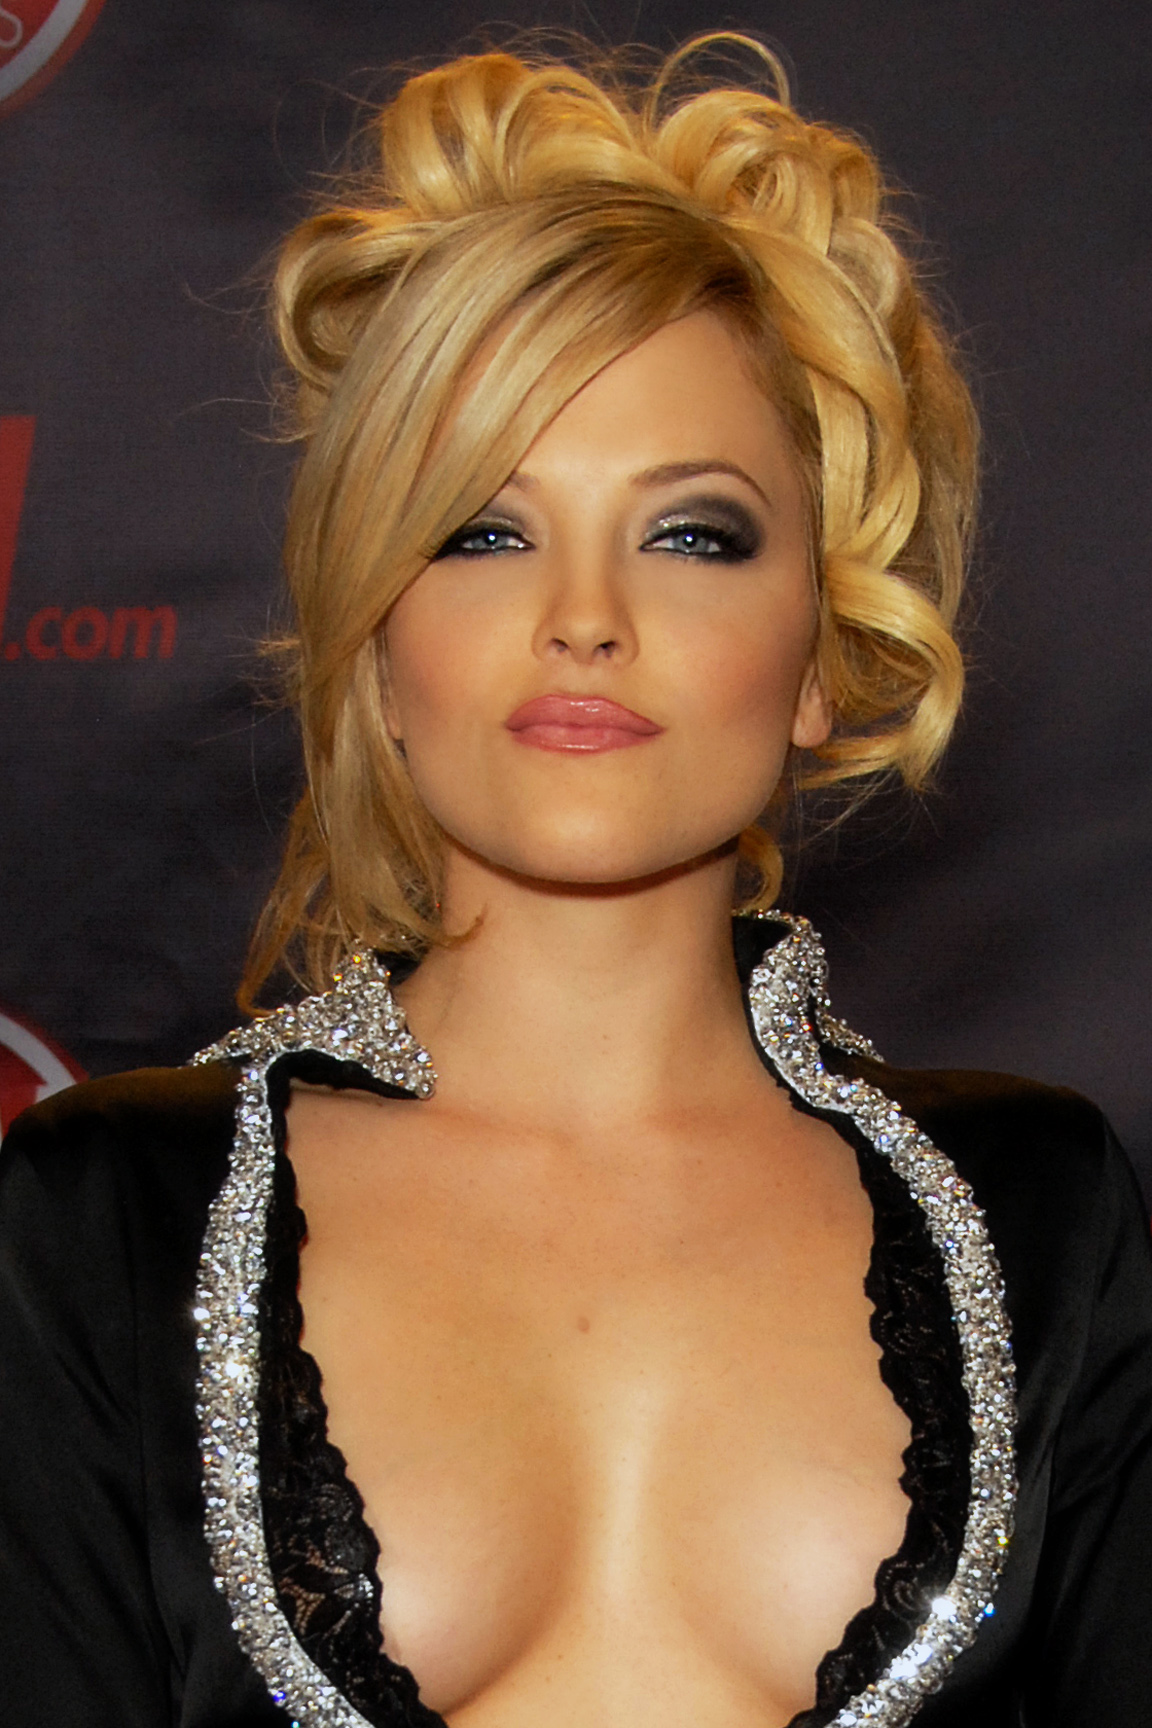 file:alexis texas 2010 - wikimedia commons